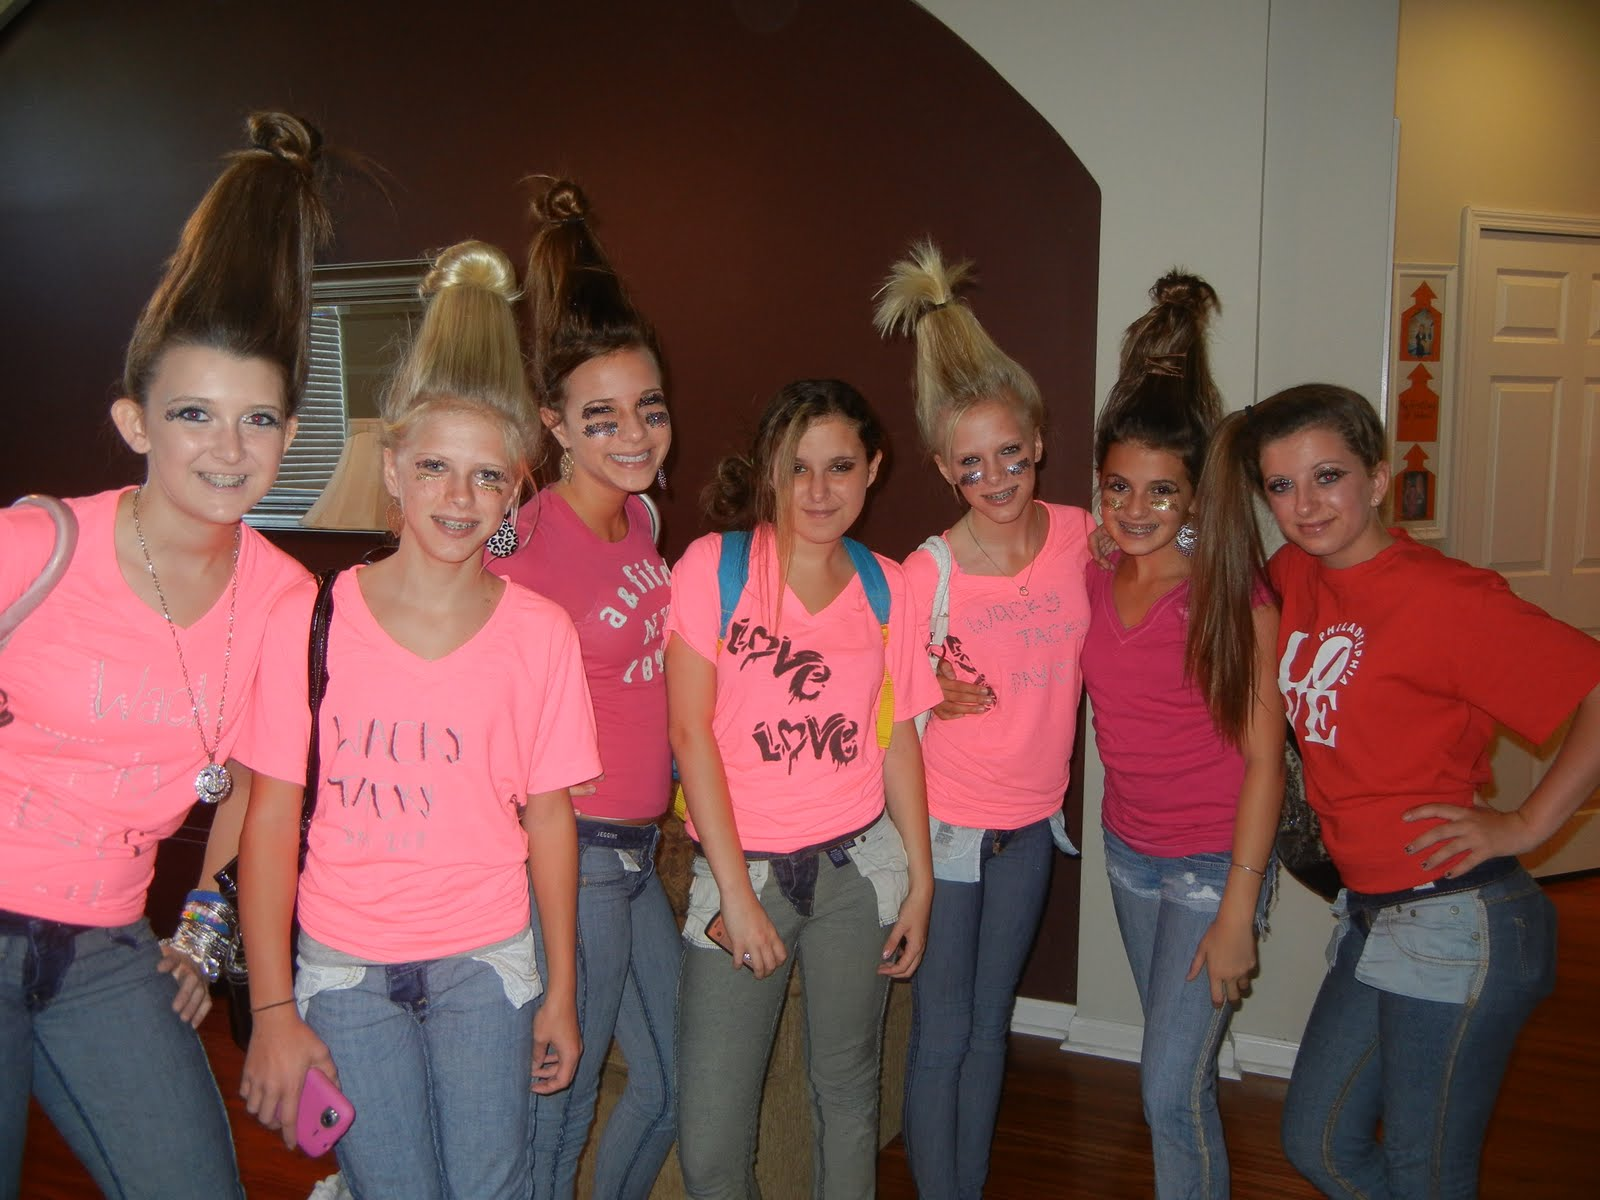 Tacky Day Hair Ideas http://hinderakerfamilyfun.blogspot.com/2011/10/homecoming-week-wacky-tacky-day.html